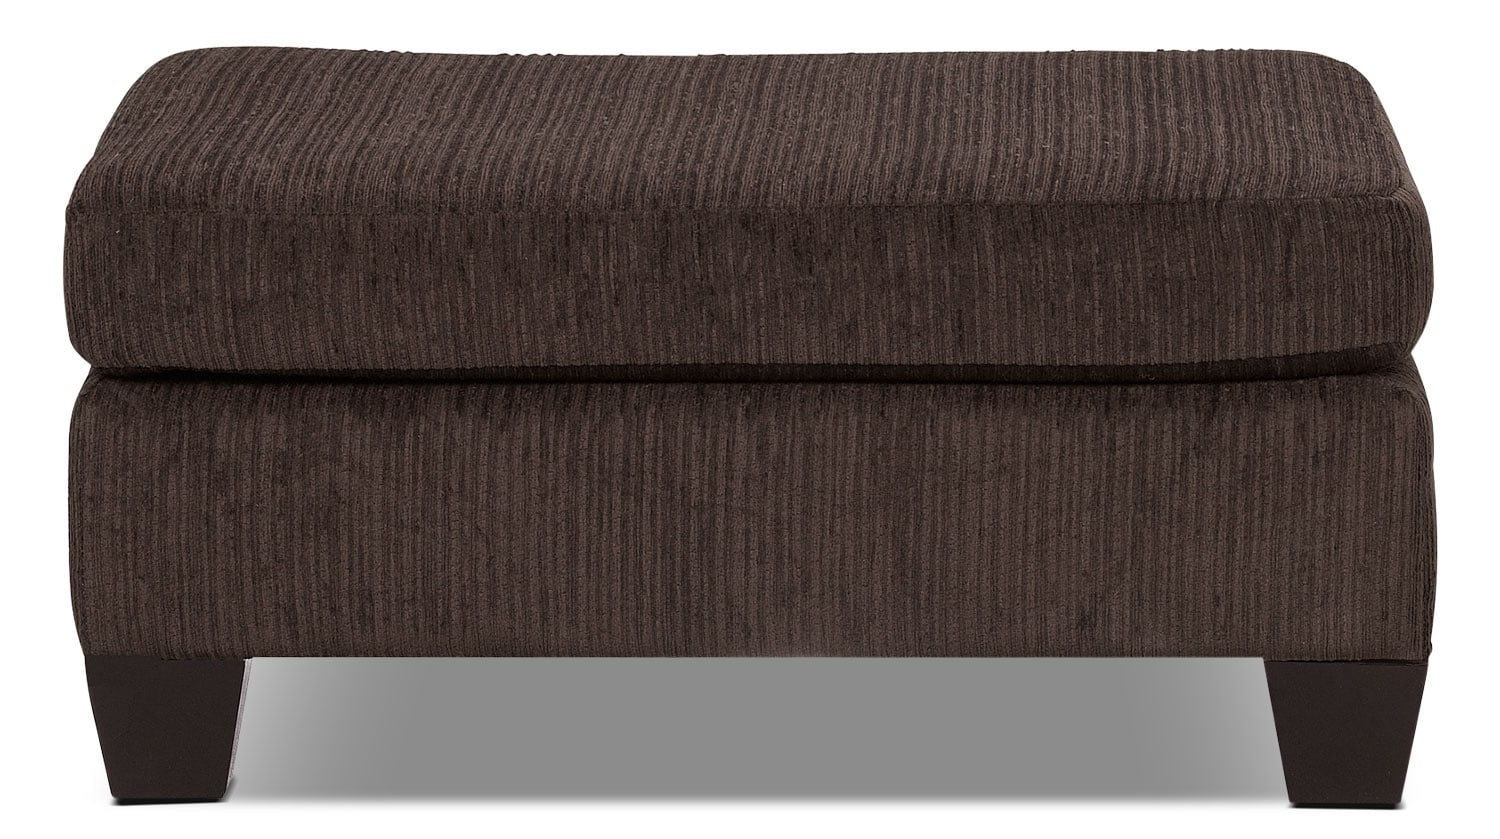 Living Room Furniture - Putty Chenille Ottoman - Chocolate